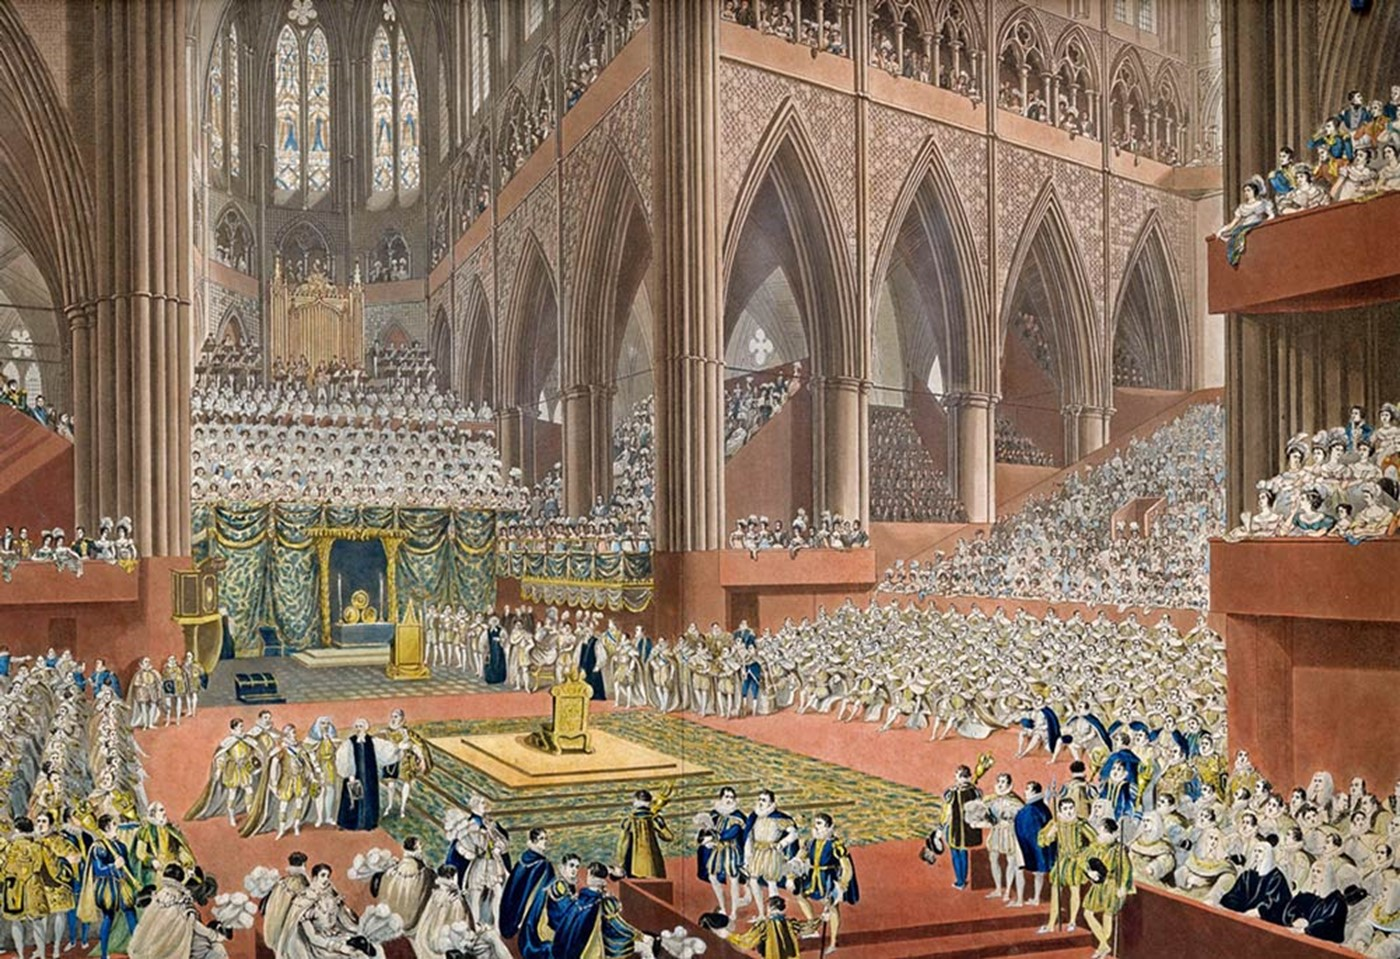 george-iv-coronation-1821-recognition.jpg